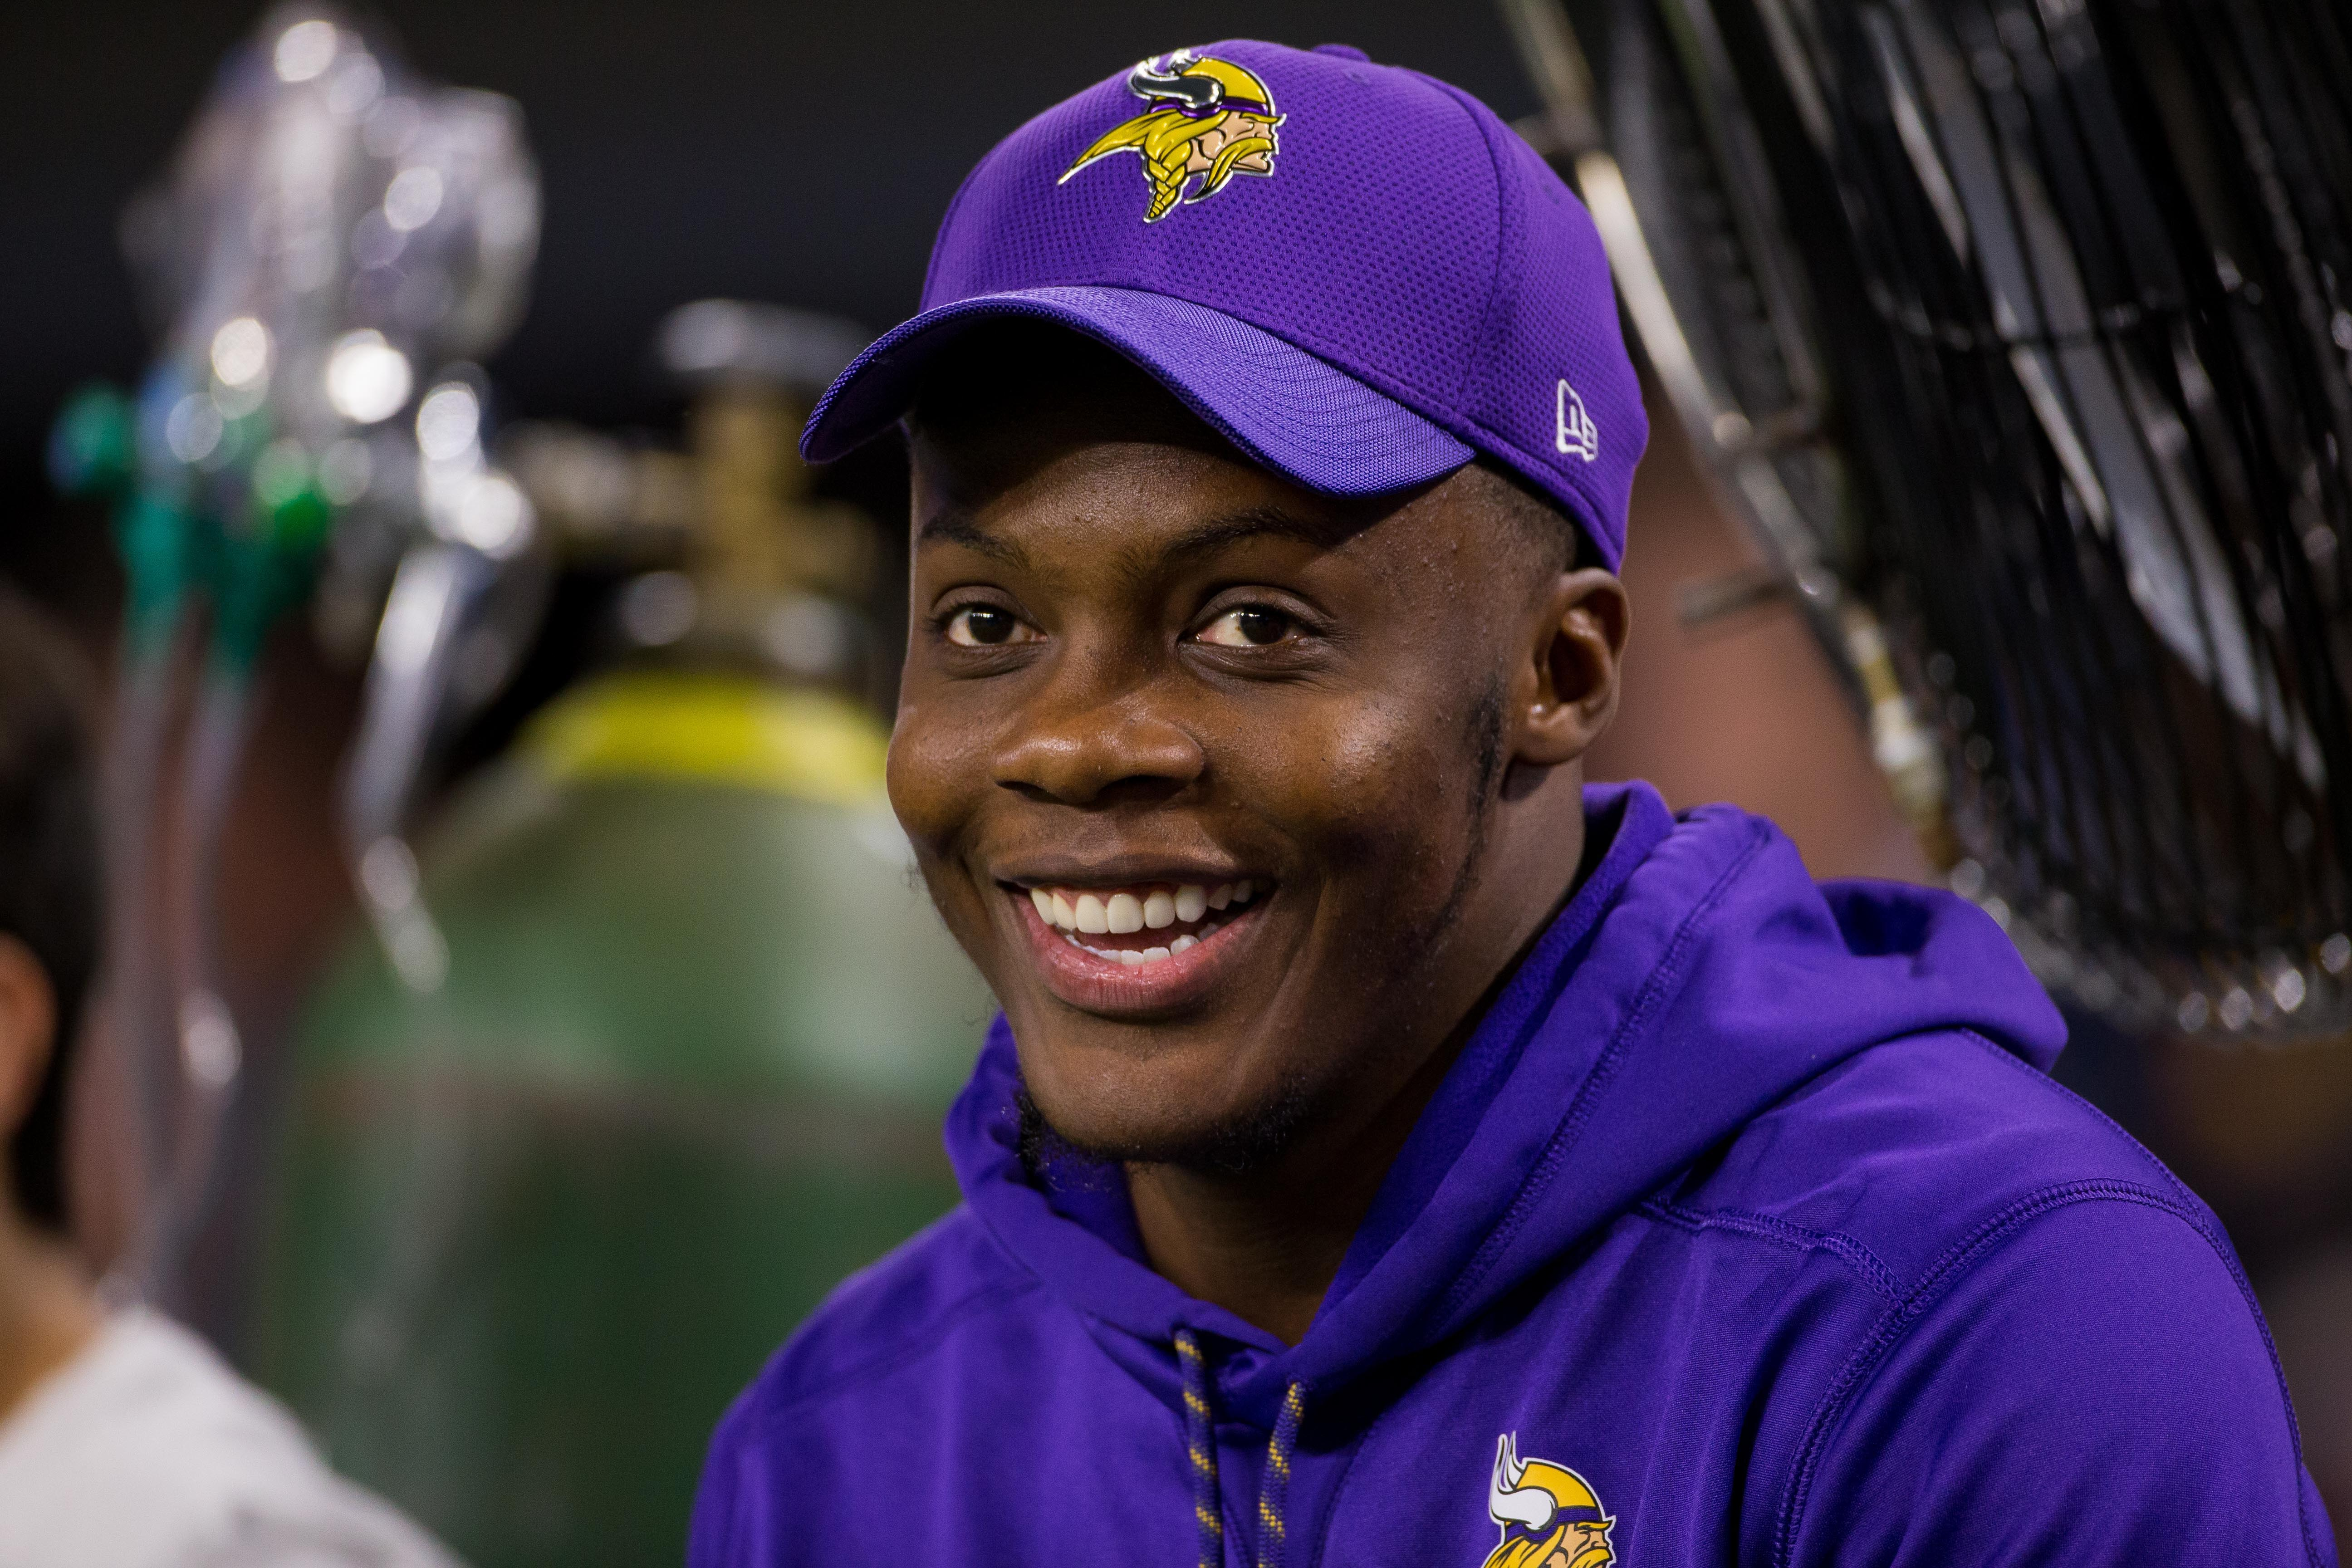 Teddy bridgewater injury update vikings expect qb to miss 2017 too report says sporting news - Transcript Teddy Bridgewater Interview With Espn 106 3